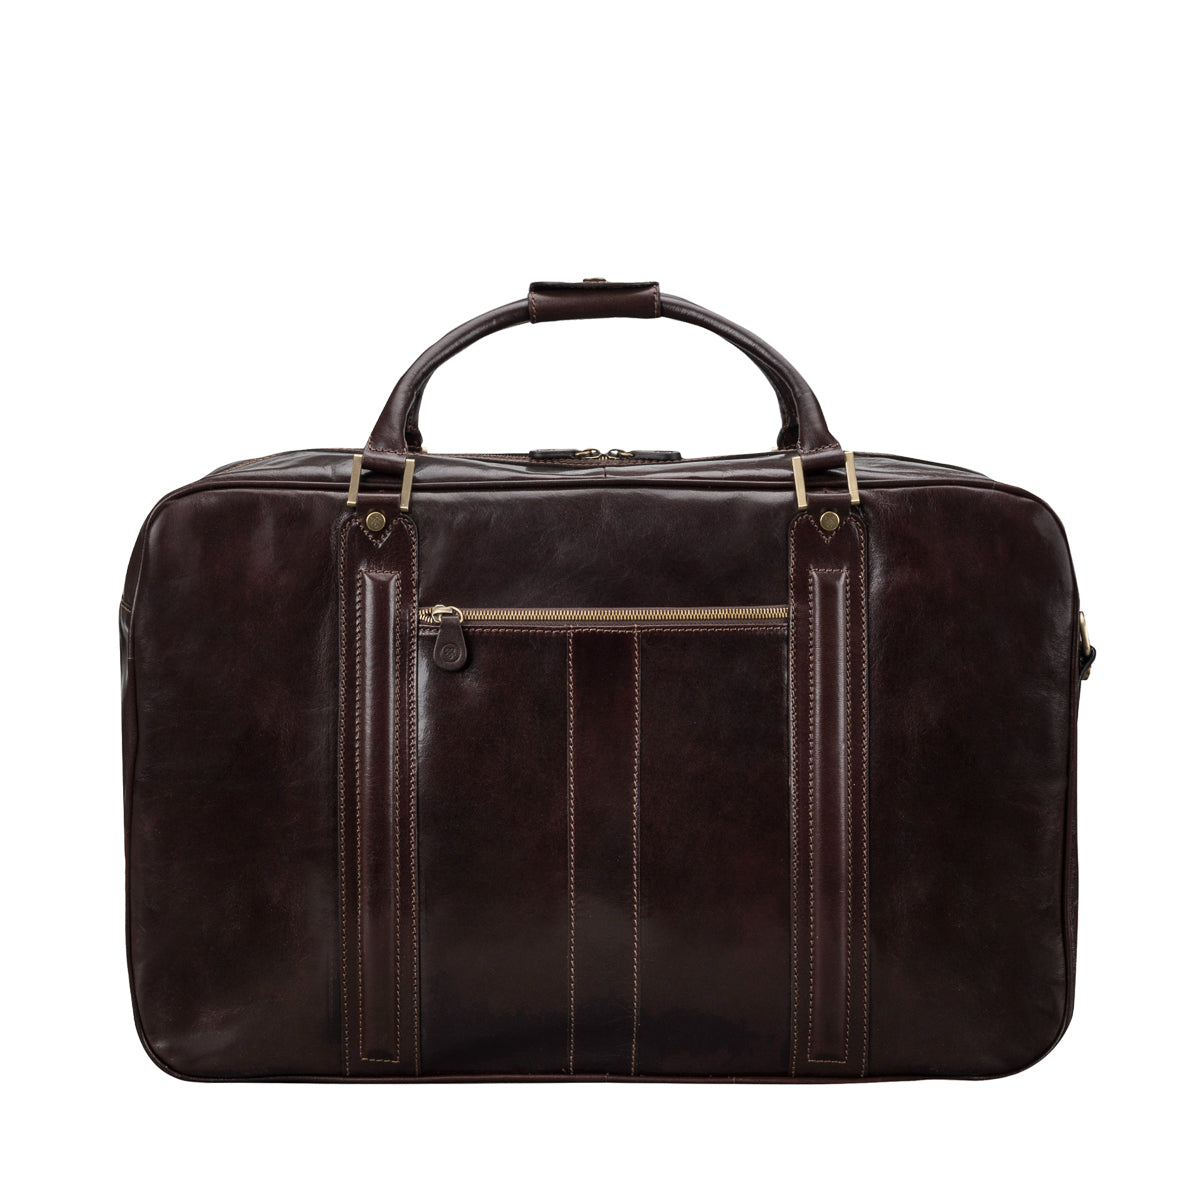 Image 4 of the 'Maurizio' Dark Chocolate Italian Veg-Tanned Leather Suitcase